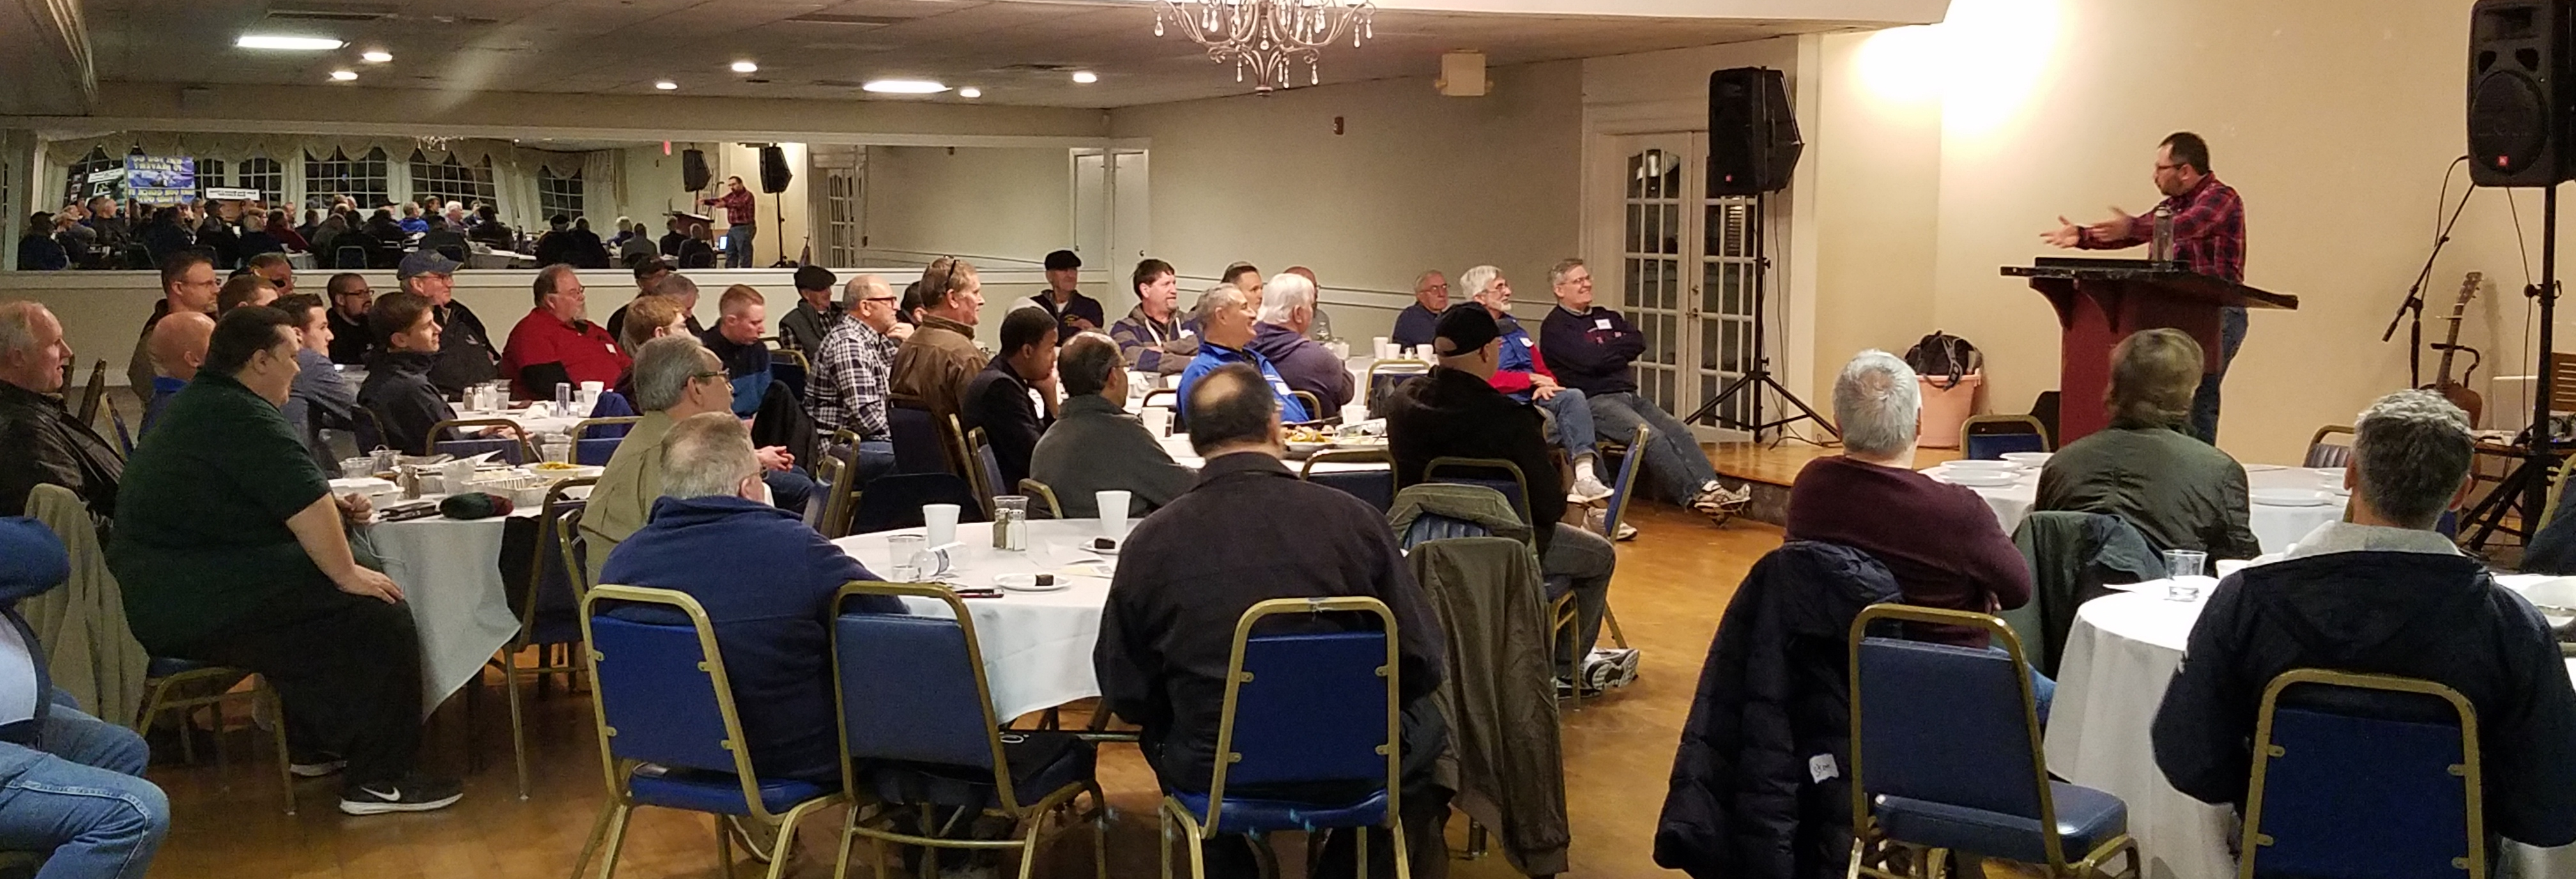 I had the honor to preach to 50+ men at a 'Men's Night Out' event. This event is meant to be evangelistic - a safe place to bring an unbelieving friend. The text of my message: the book of Hebrews. The message: Jesus is Greater. Greater than what? Jesus is absolutely greater than anything. And when we grasp that, our life will never be the same. Praise God!